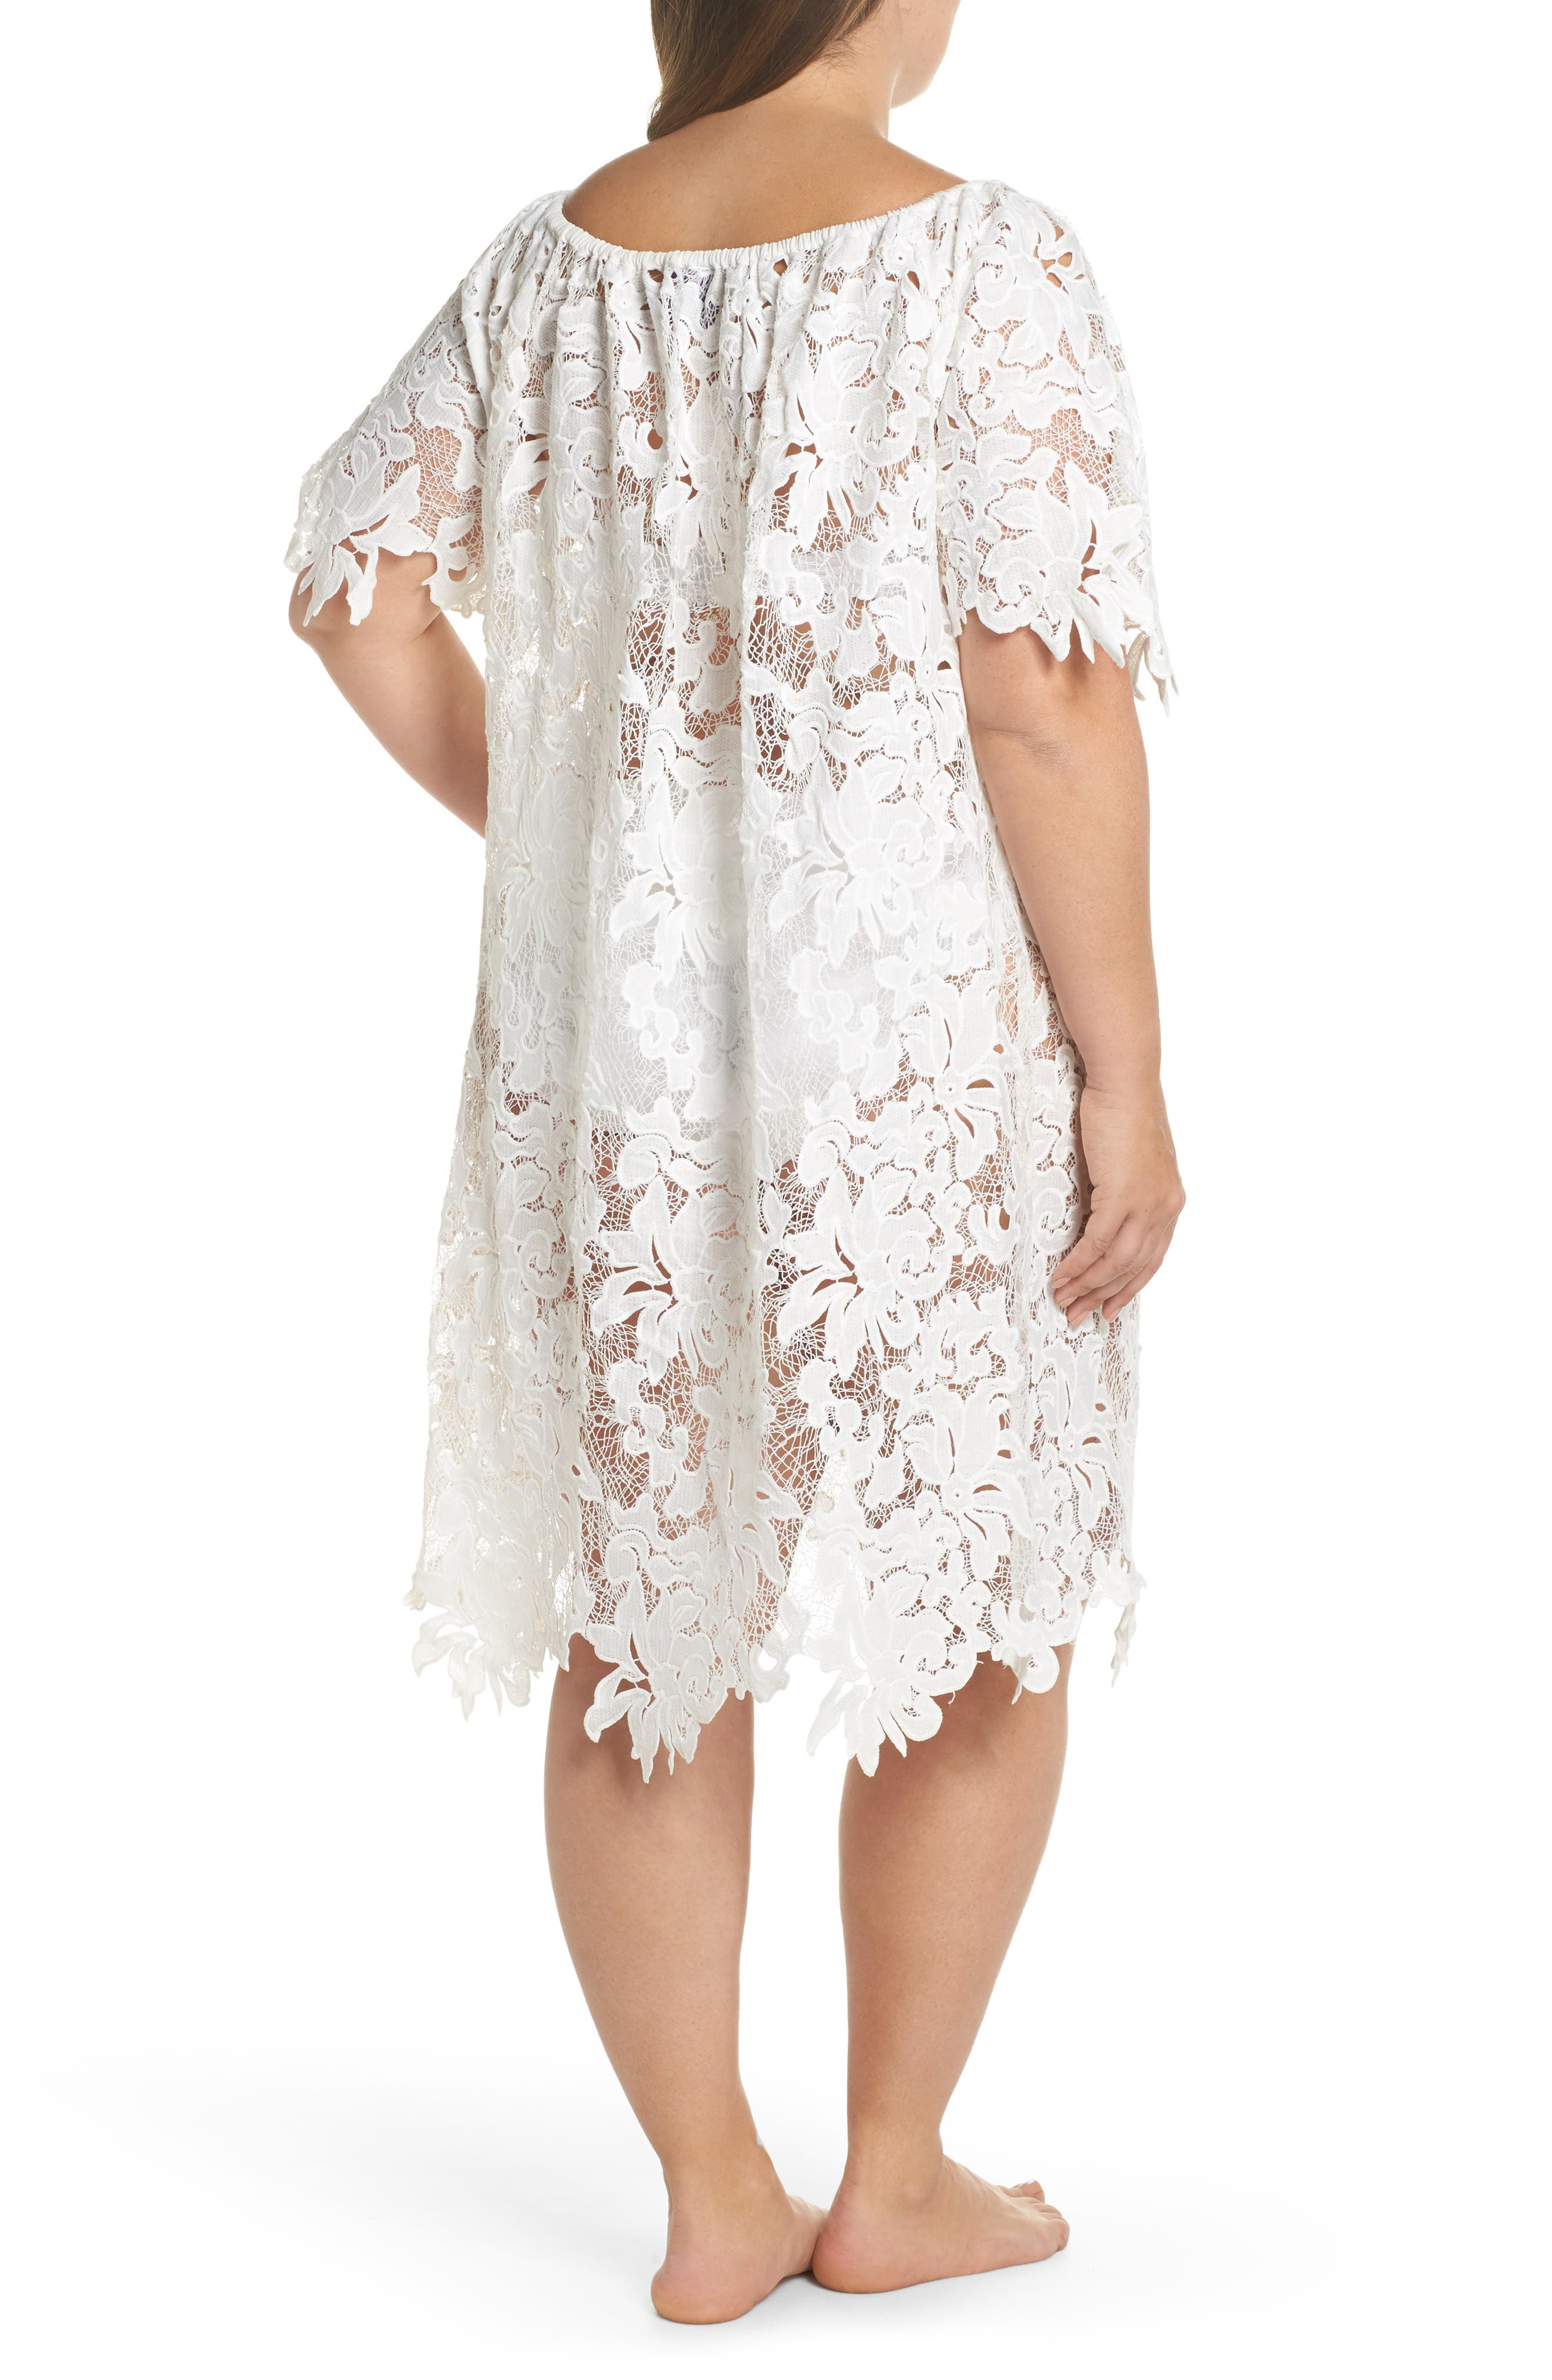 Ode Lace Cover-Up Dress,                             Alternate thumbnail 2, color,                             100